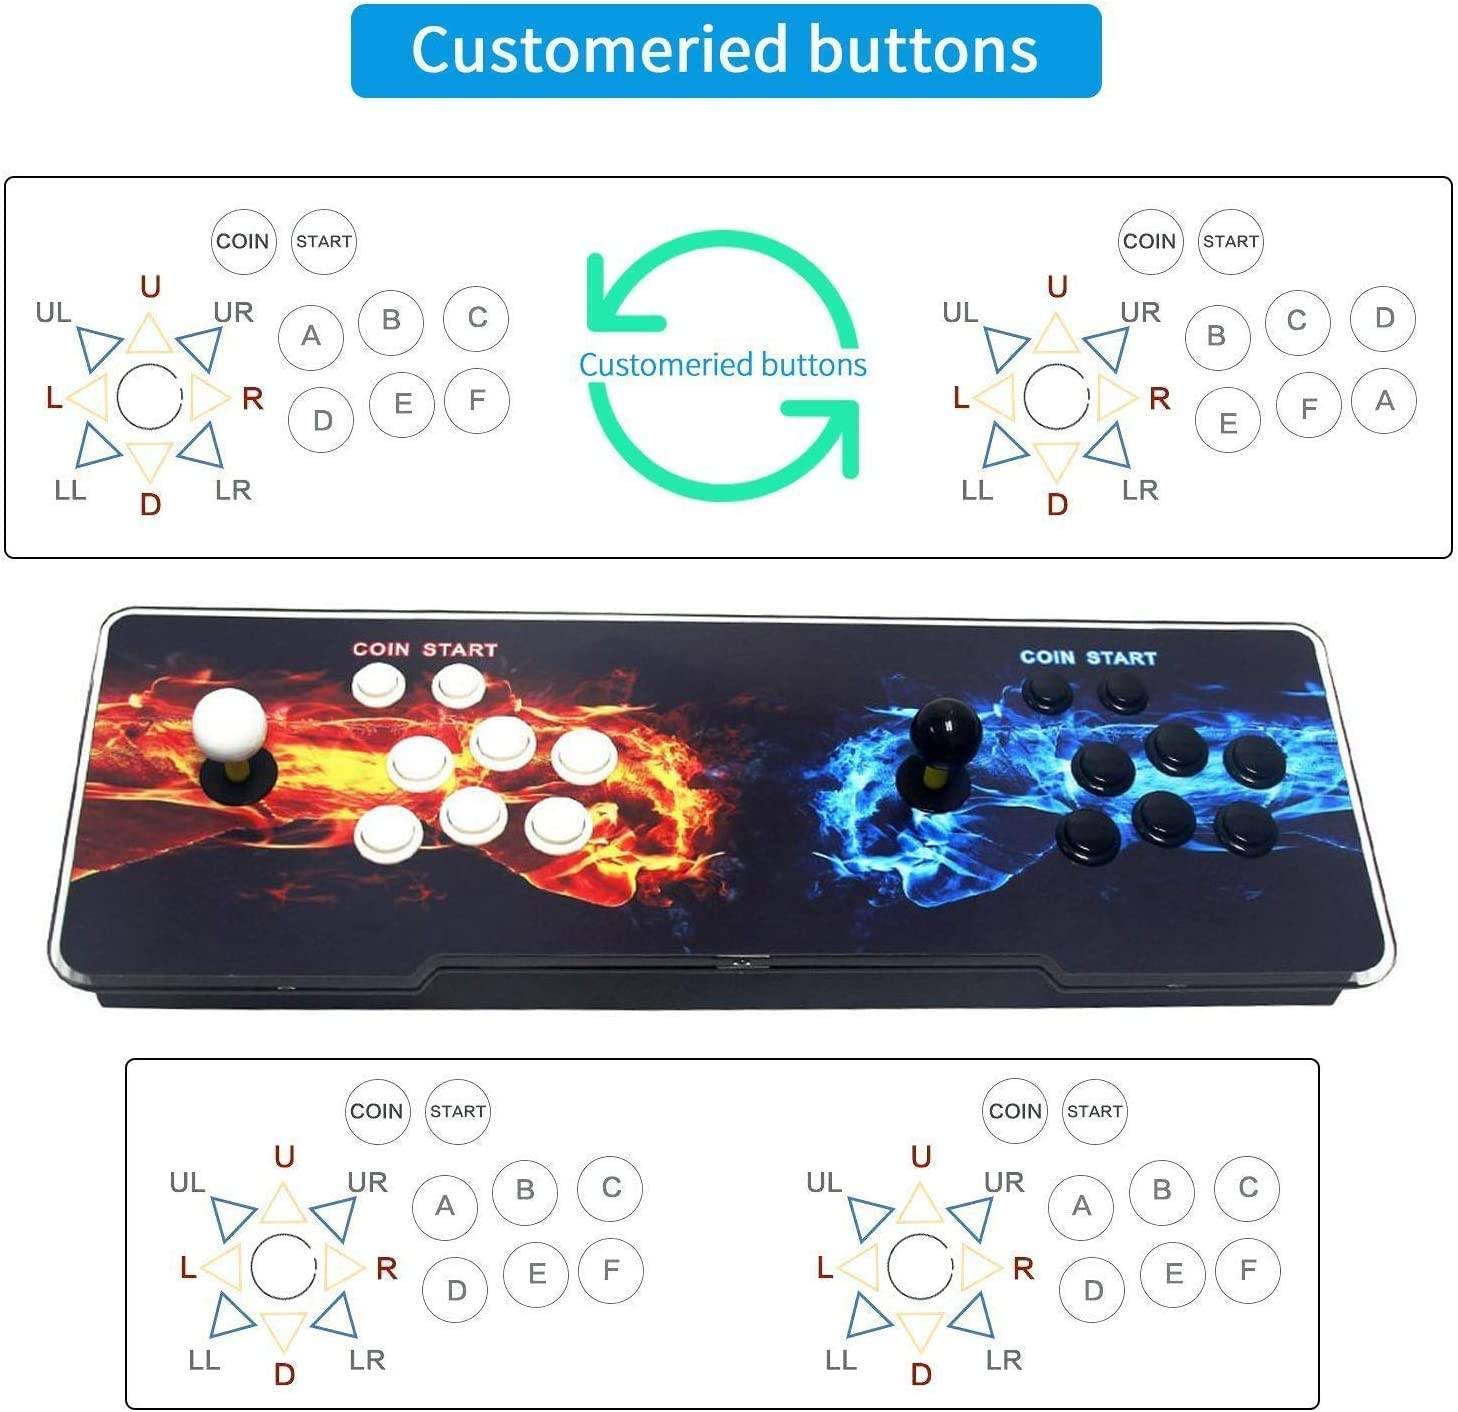 SeeKool Pandora 11 Arcade Video Game Console, 2255 in 1 Retro Video Games  Colorful LED Double Stick Arcade Console, HDMI VGA USB Newest System Arcade  ...